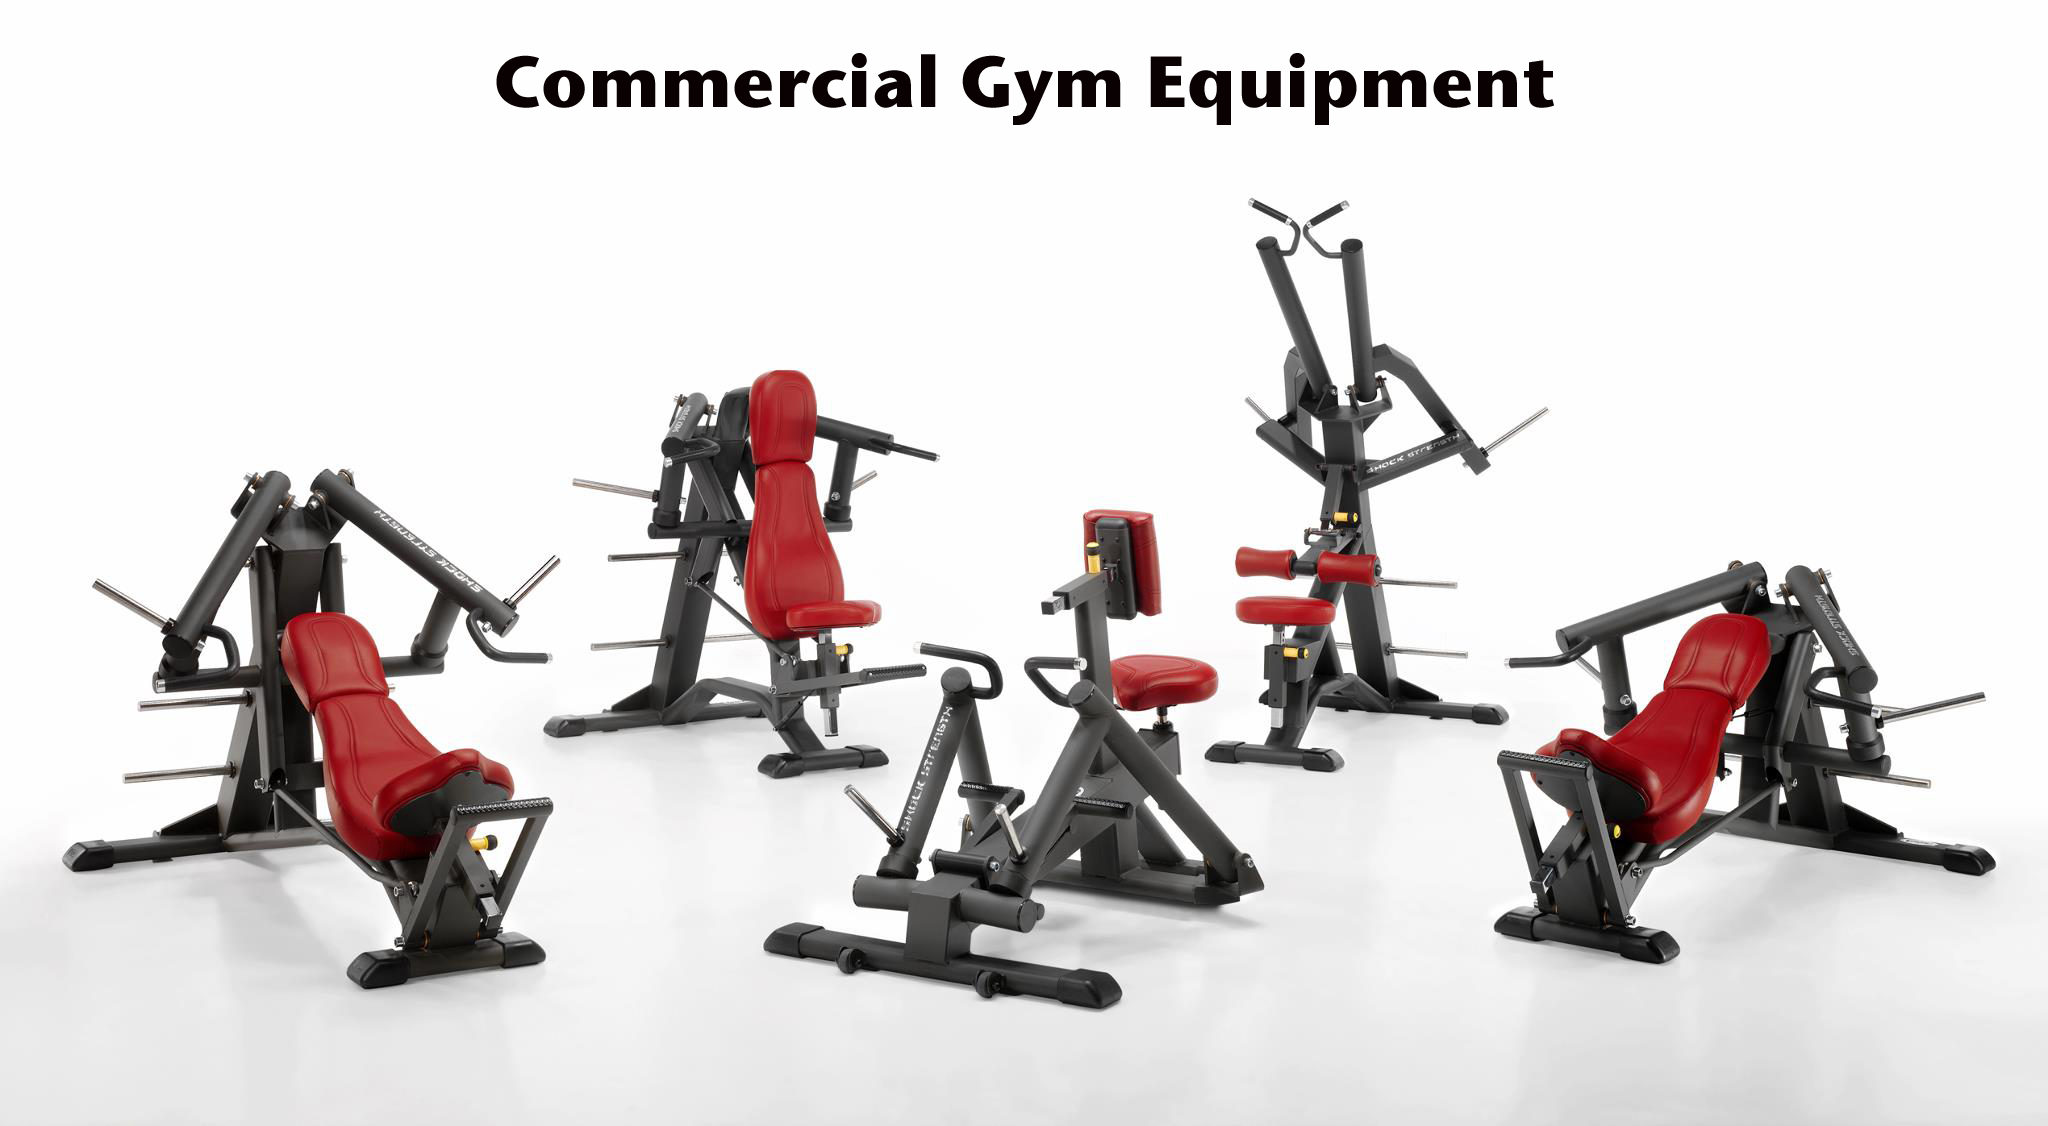 9b7a73186f Are You Looking For Commercial Gym Equipment In India